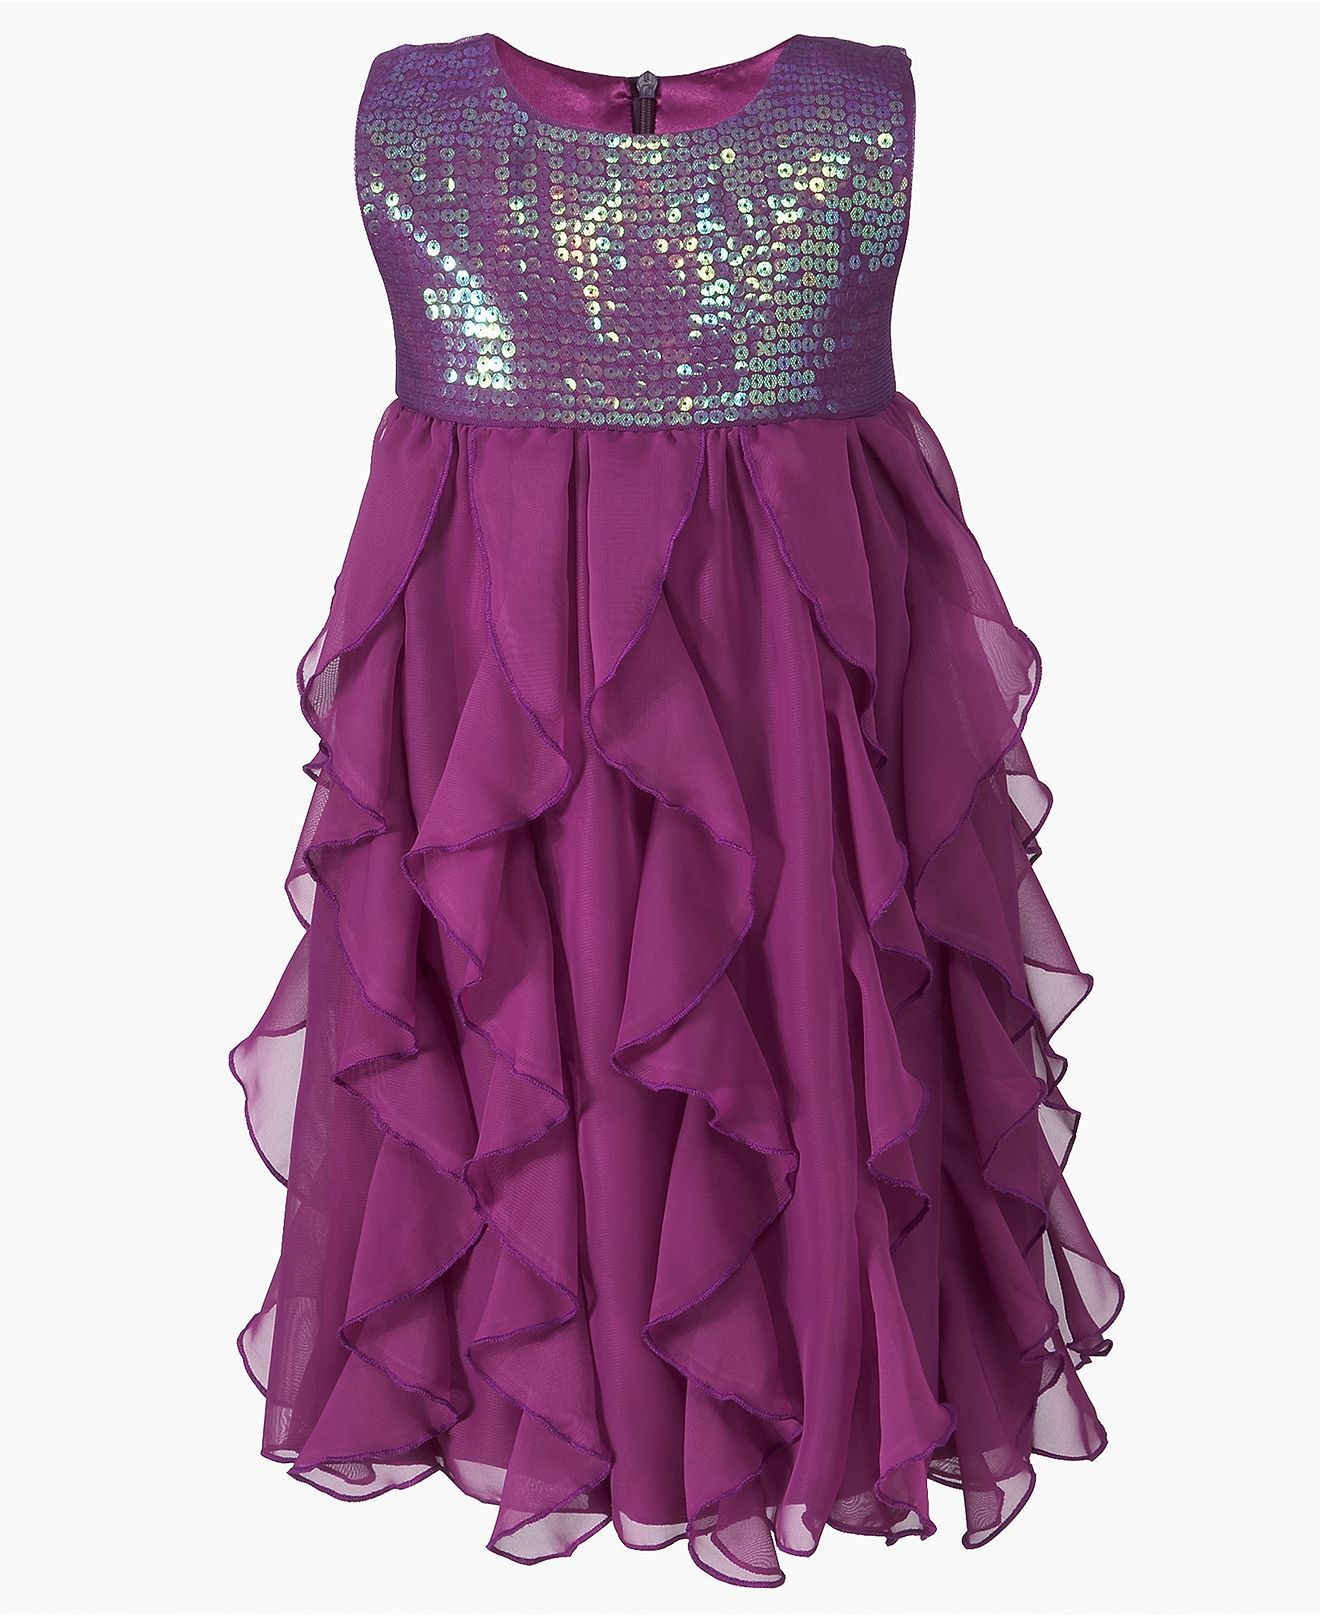 DKNY Girls Dress, Little Girls Sequin Chiffon Dress - Toddler Girls (2T-5T)  - Kids & Baby - Macy's